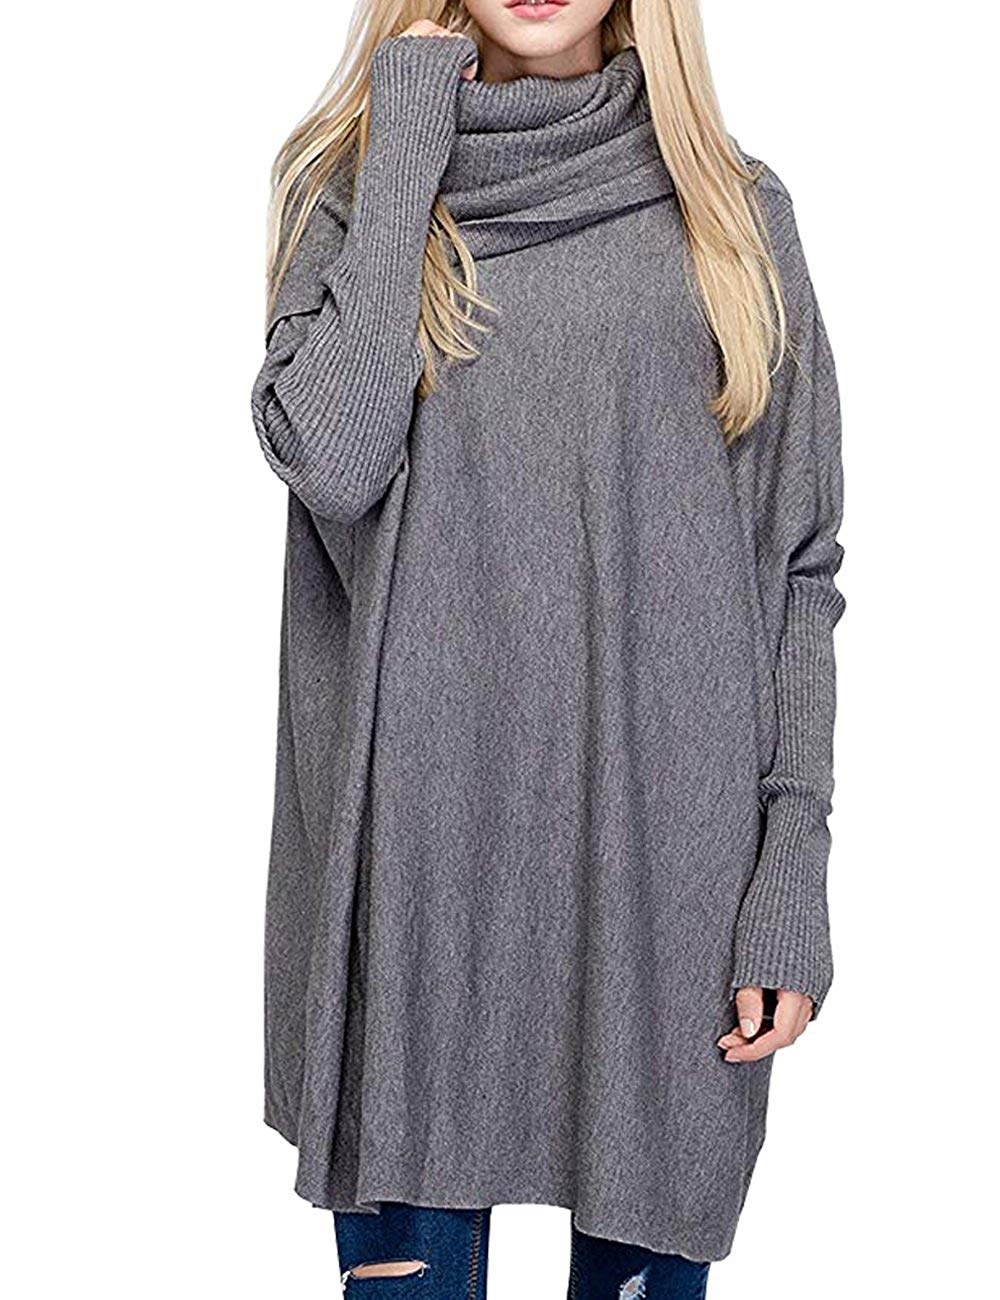 BOBIBI Women Oversized Cowl Neck Sweaters Long Sleeve Loose Fit Knitted Pullover